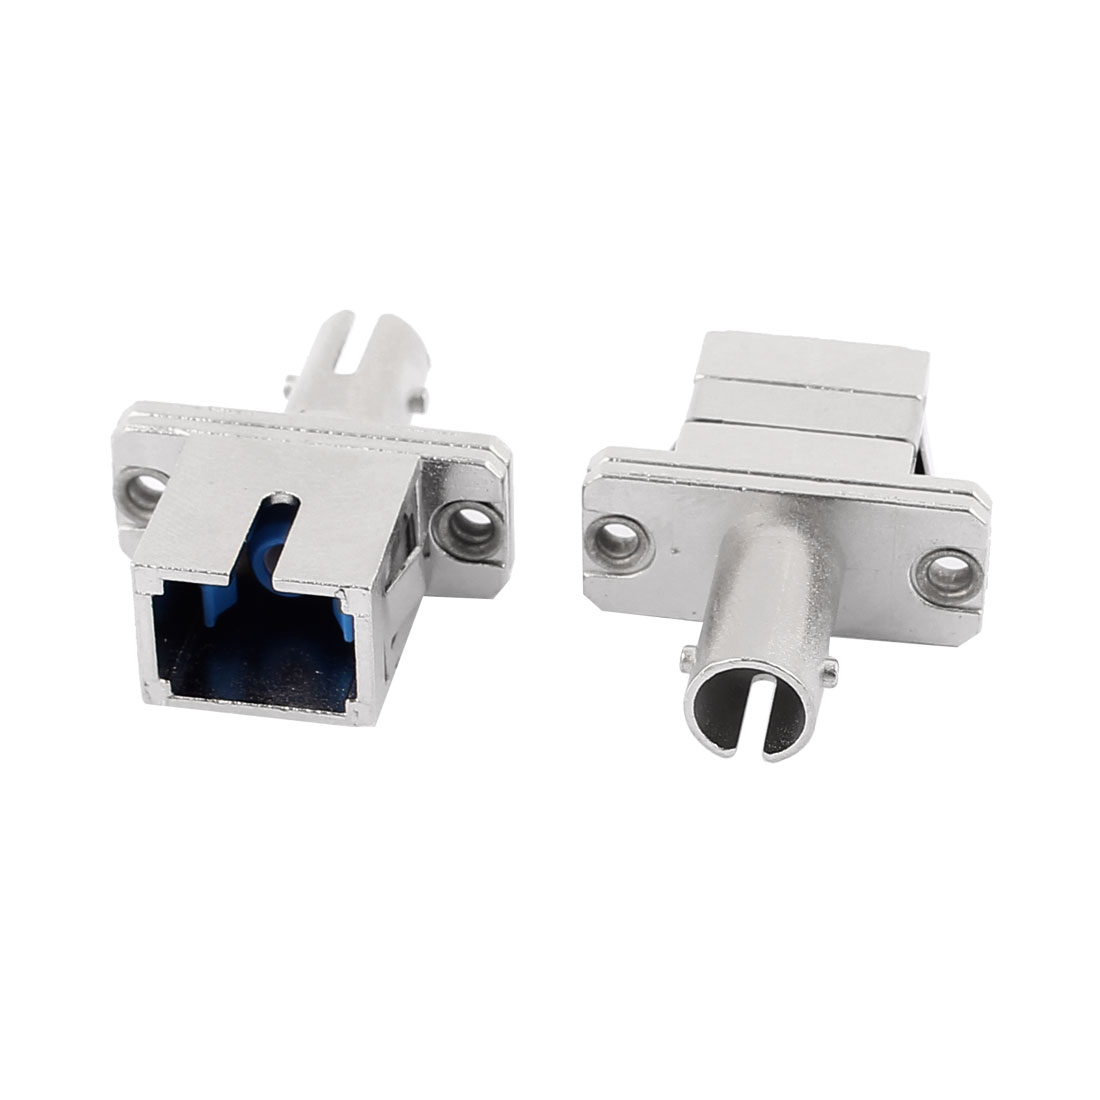 Silver Tone Metal FC to SC Flange Fiber Optic Adapter Cable Coupler 2 Pcs